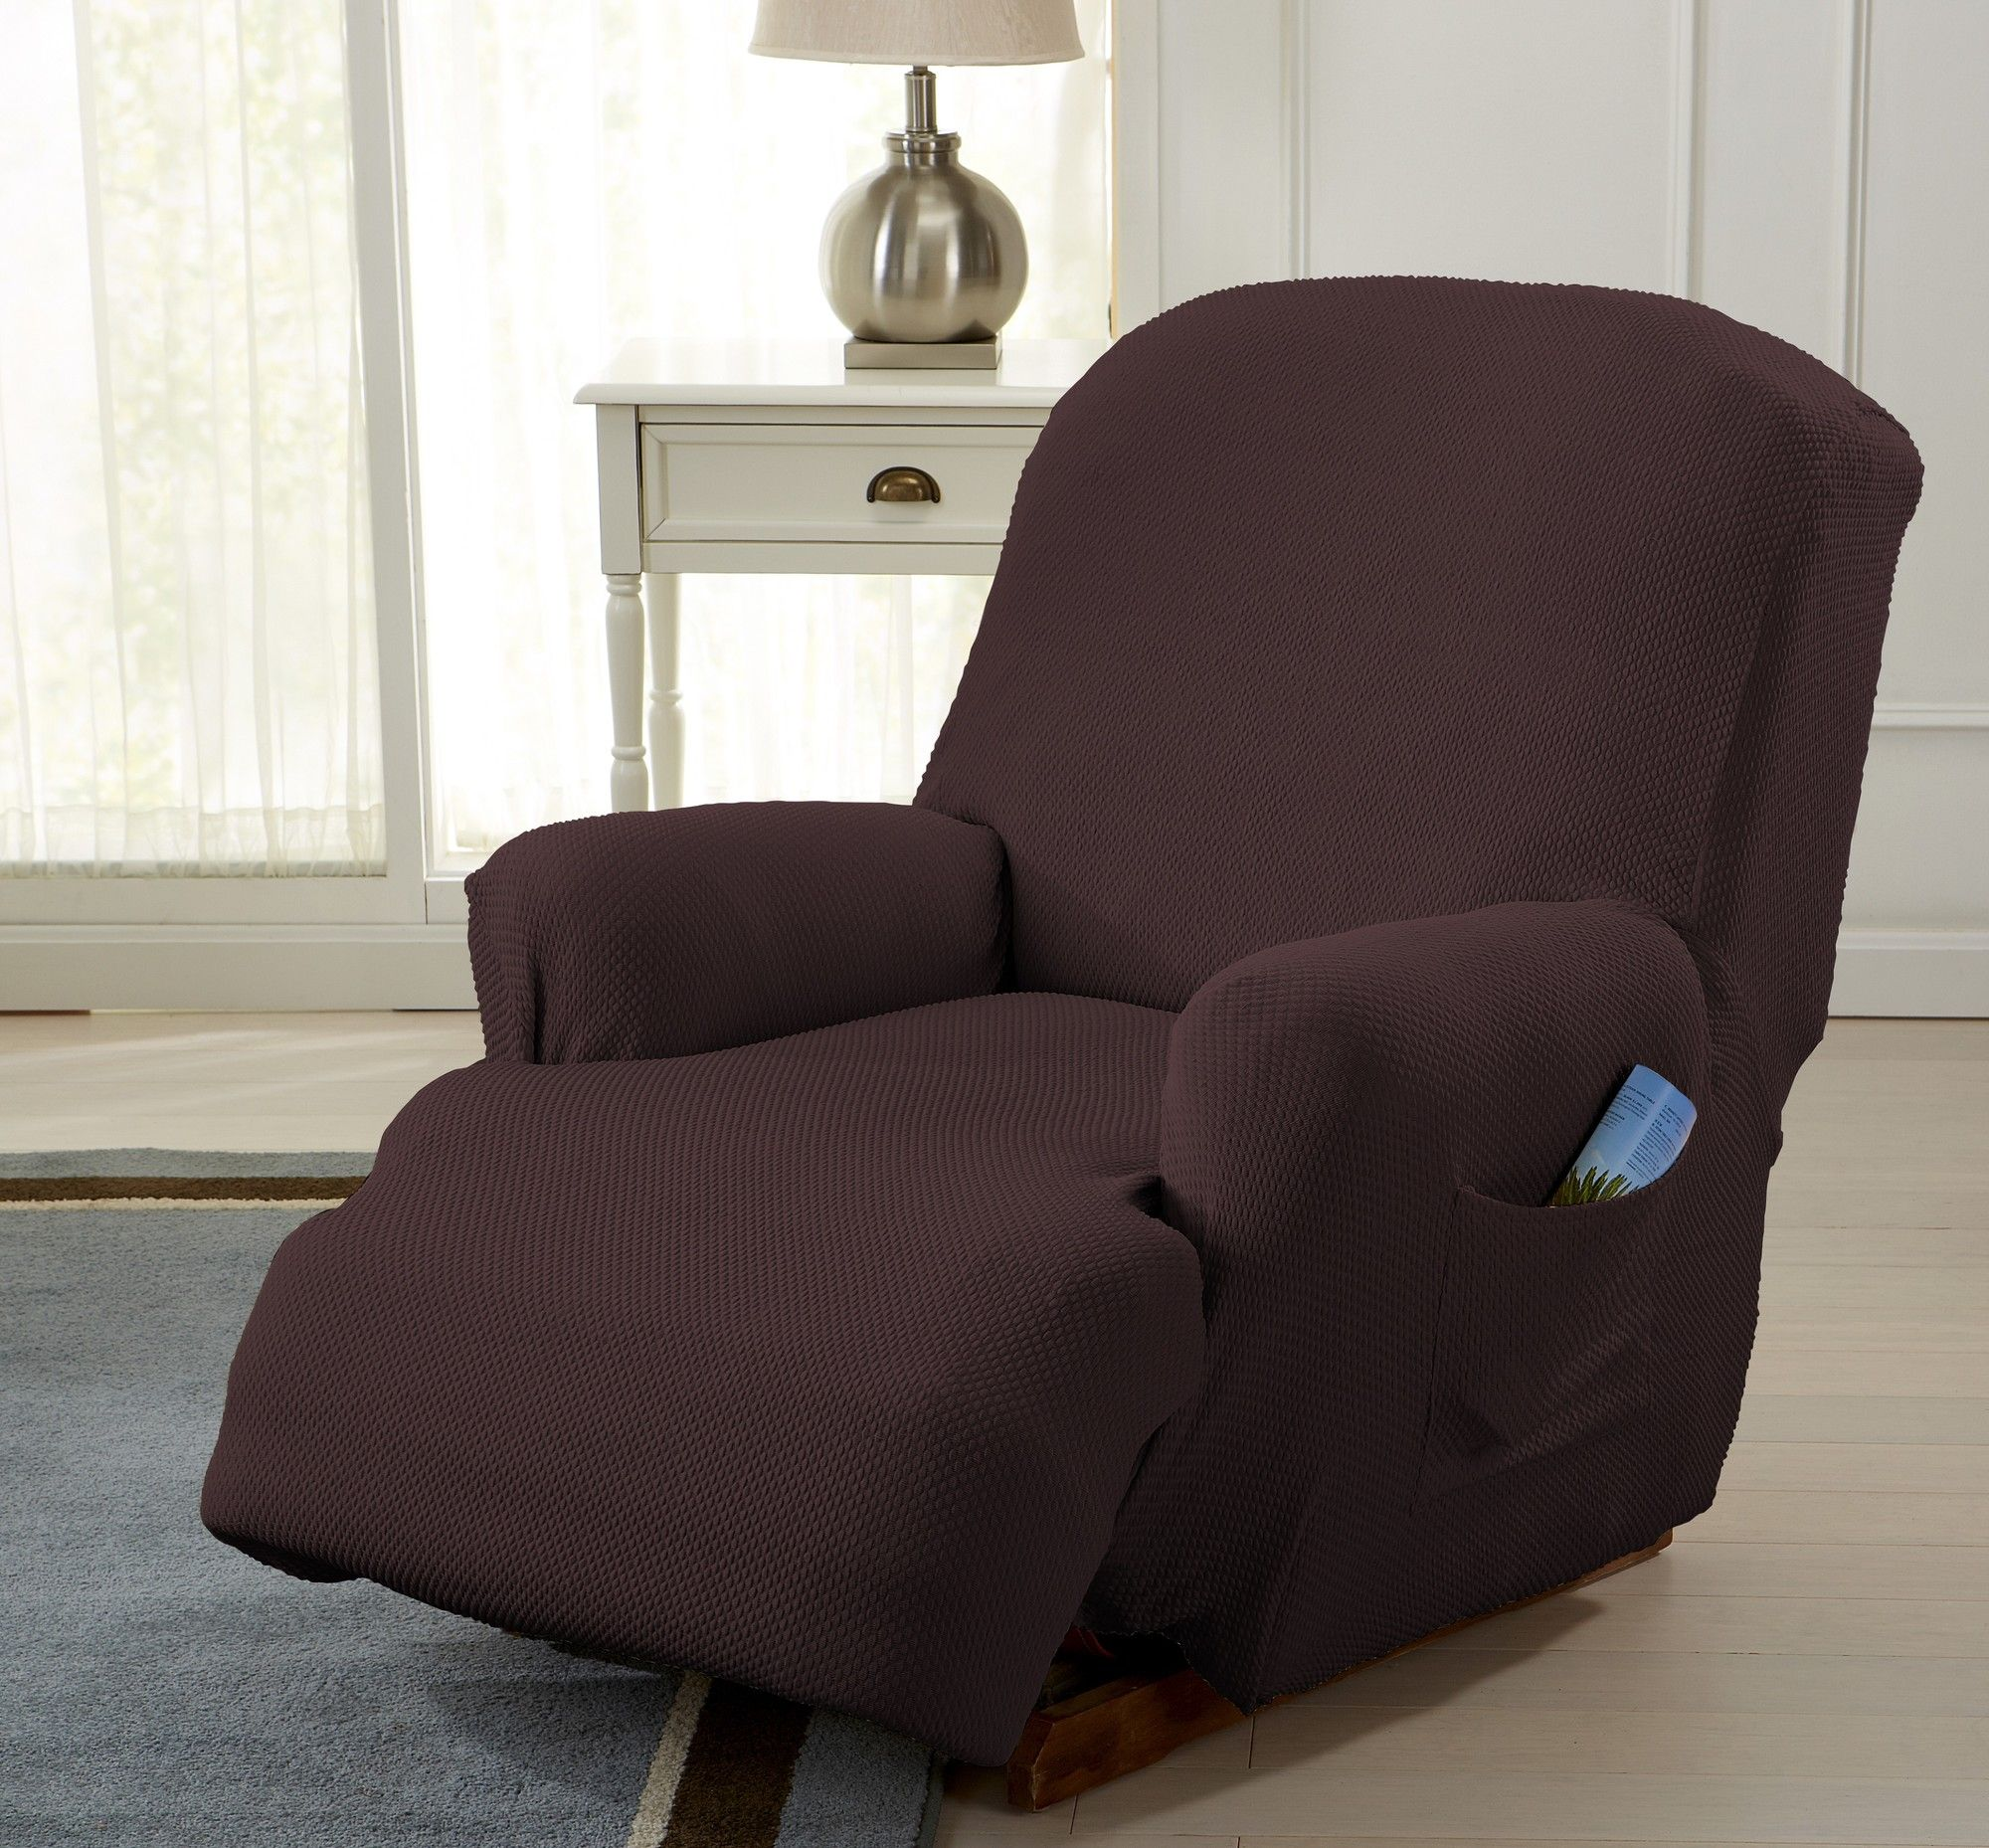 Savannah Recliner TCushion Slipcover Furniture